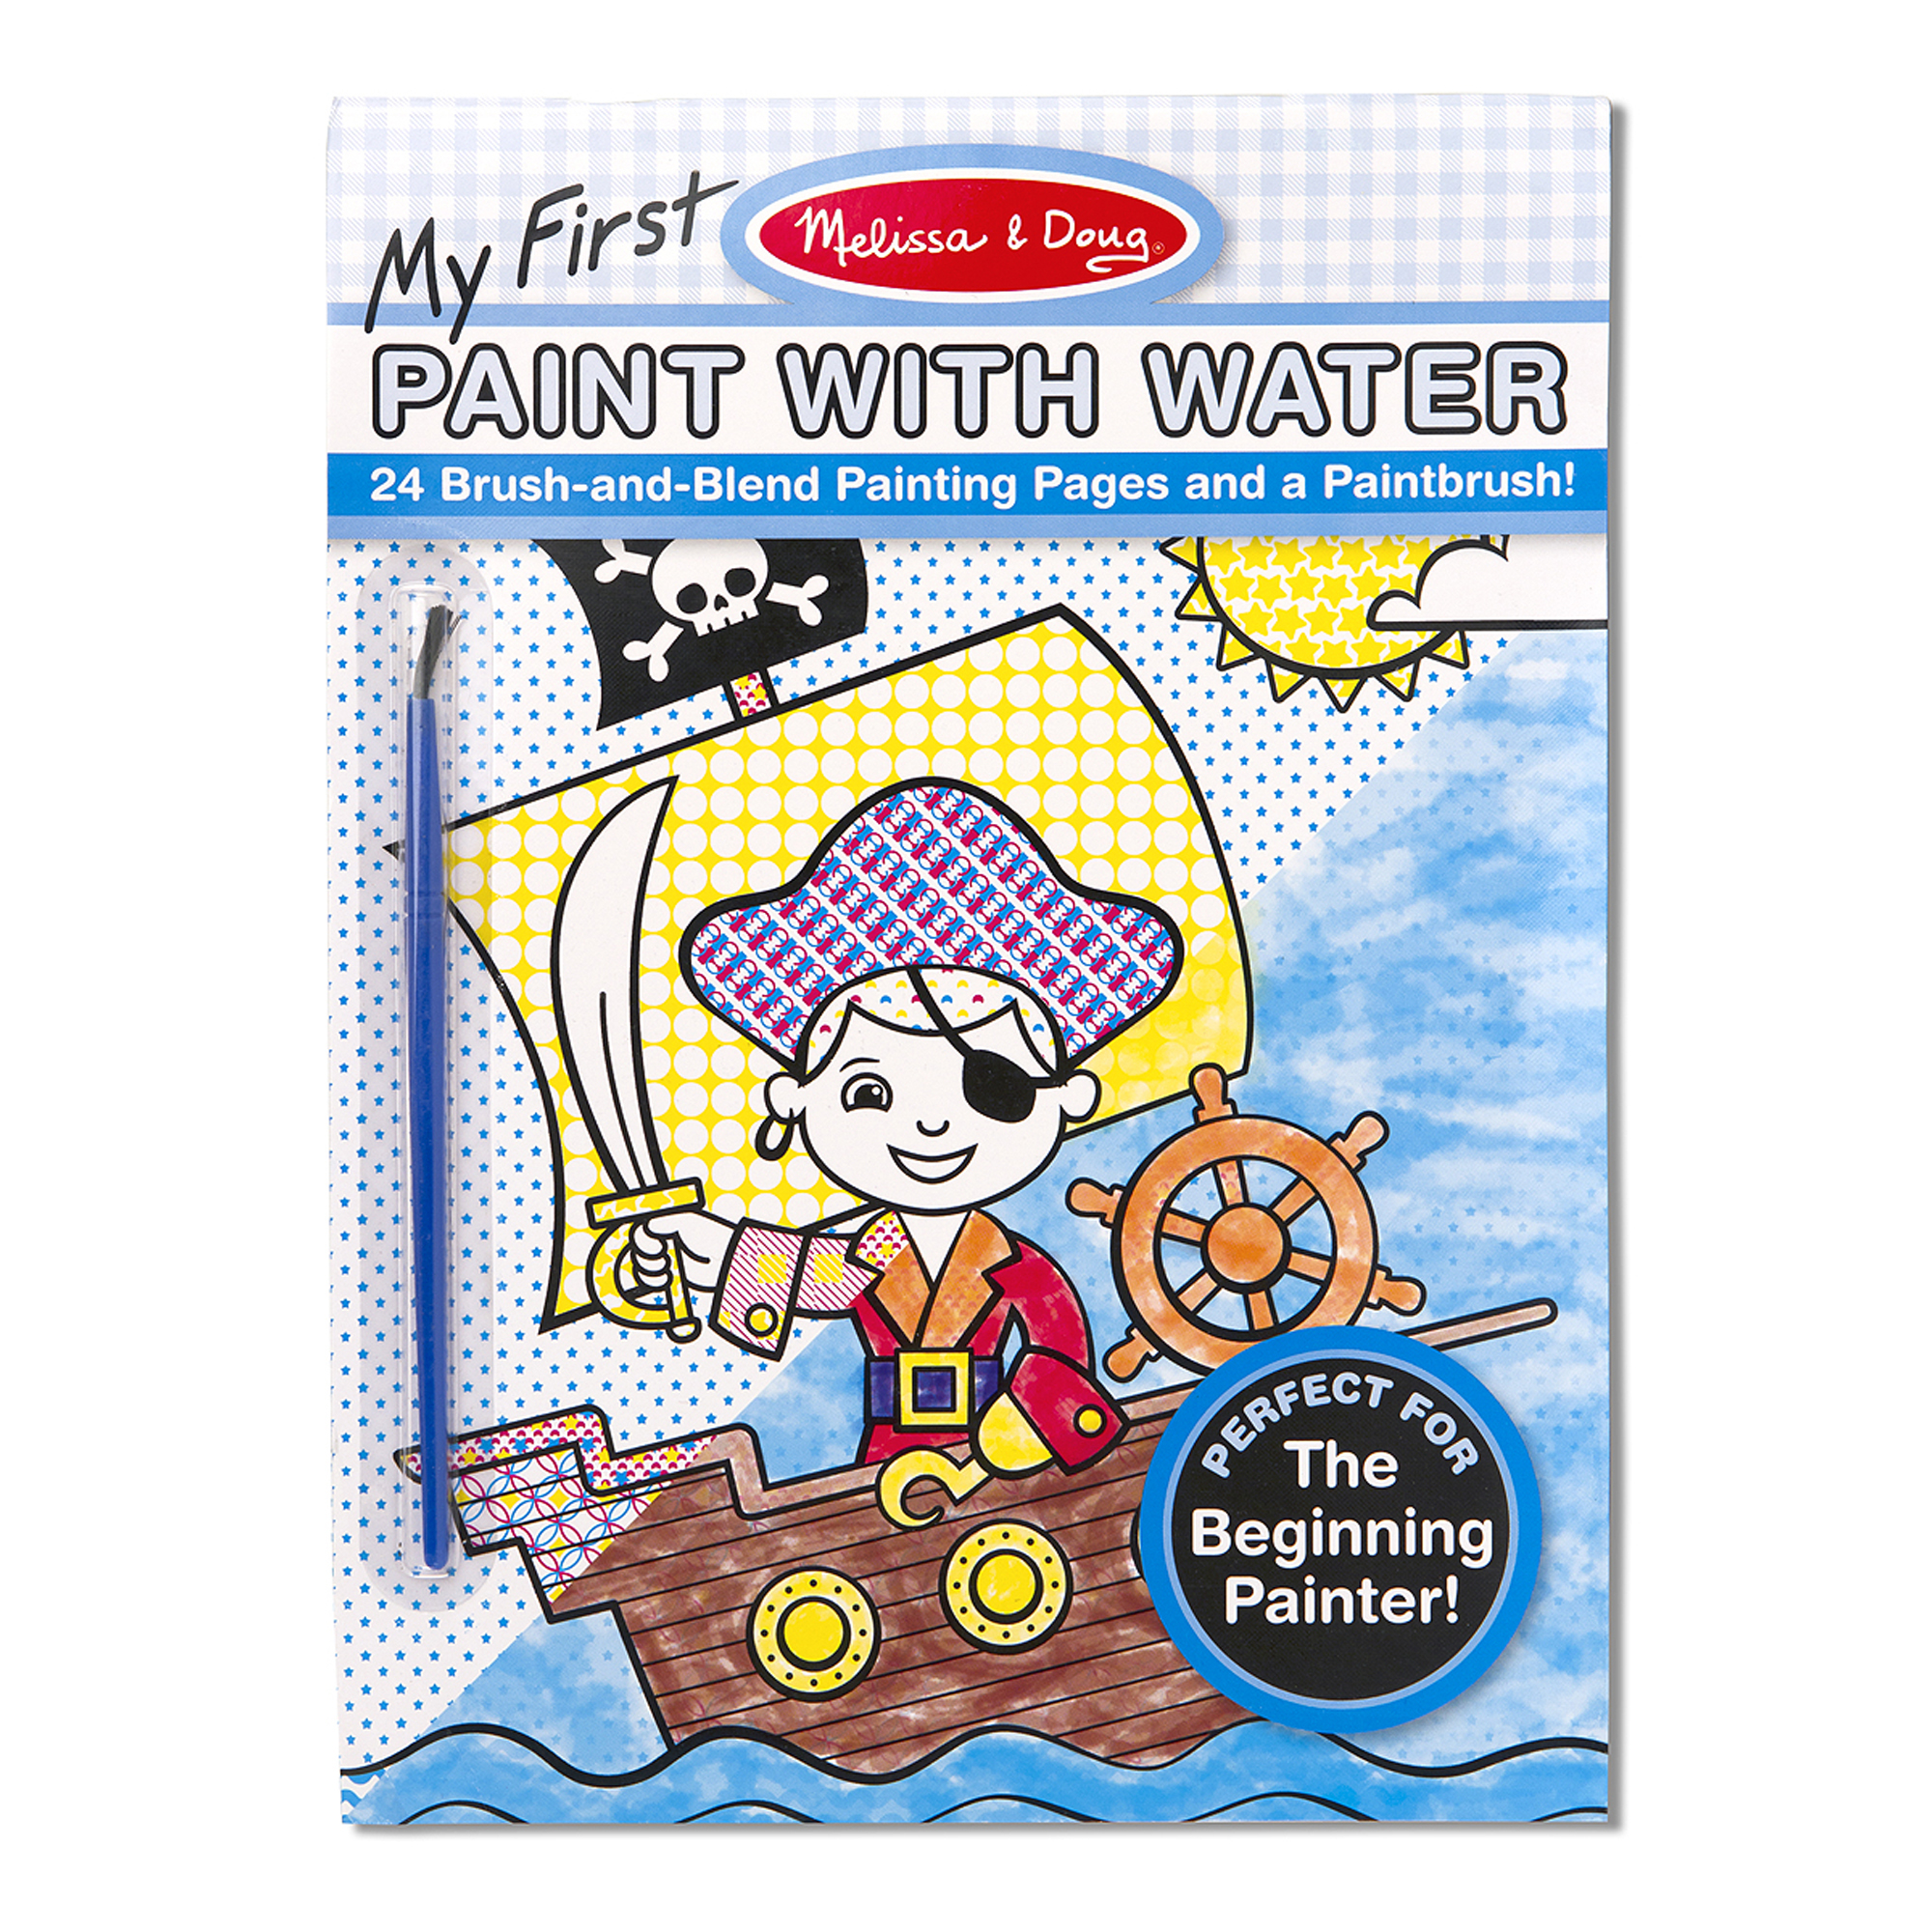 My First Paint With Water Kids Art Pad With Paintbrush – Pirates, Space, Construction, and More